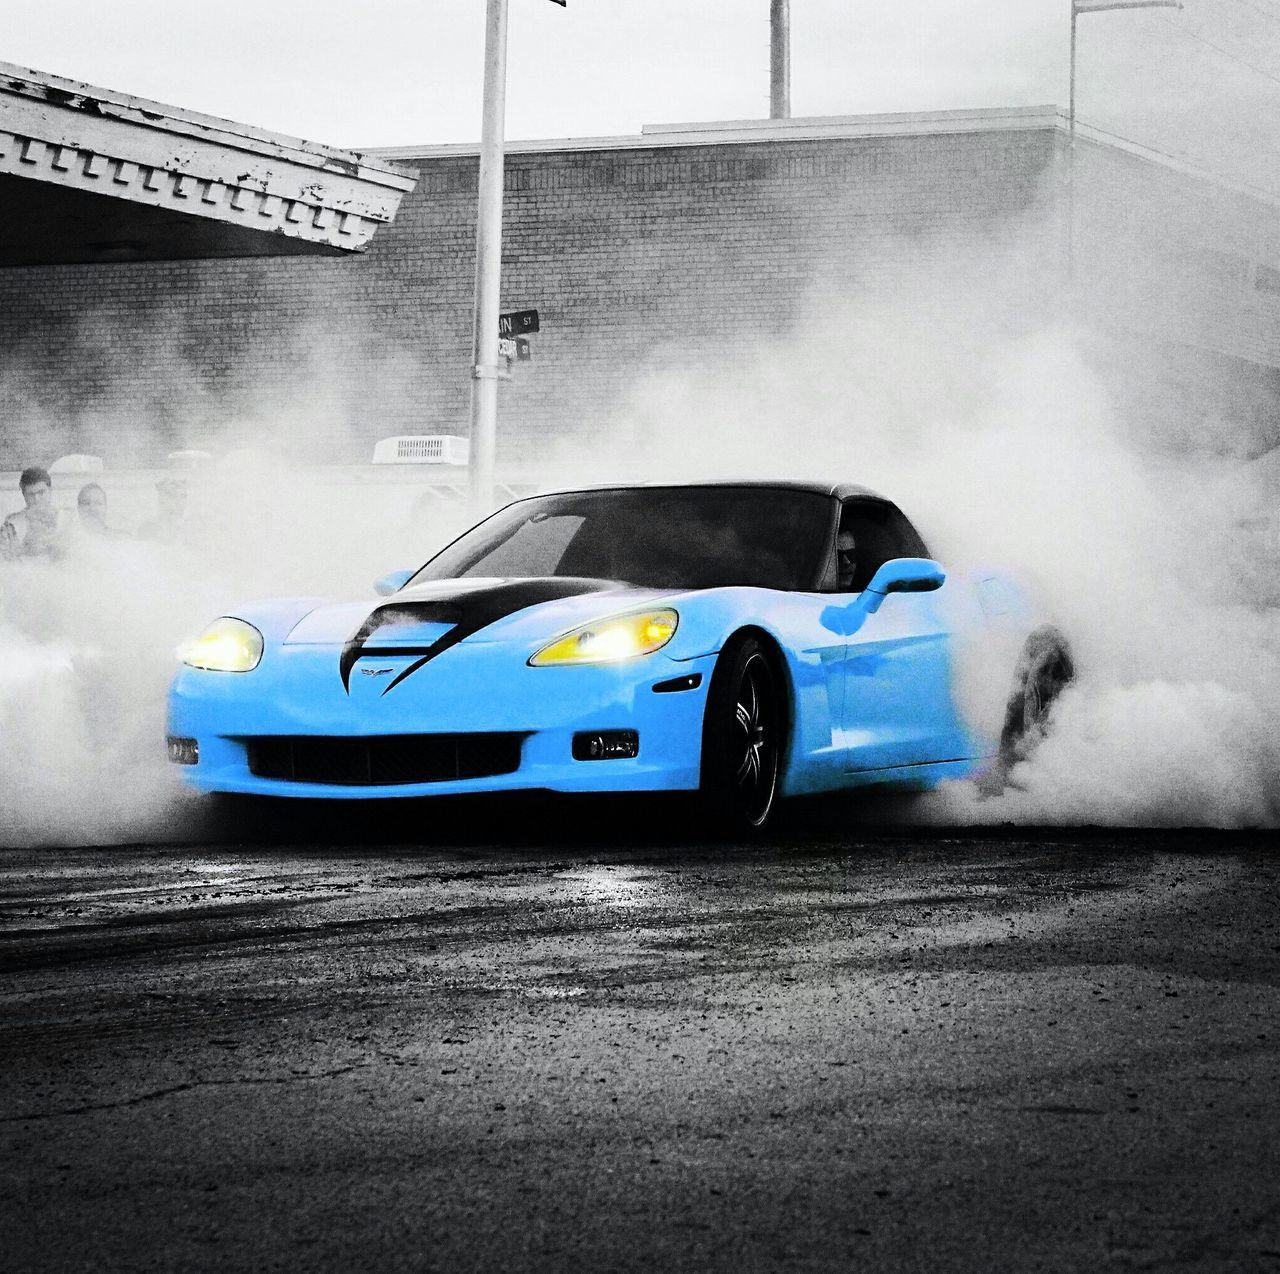 Car Transportation Speed No People Day Outdoors Motorsport Let It Burn Burn It Burn Out Burnout Competition Land Vehicle CarShow Mode Of Transport Cutting-edge Pop Art Photos ArtWork Artphotography Pop Art Car Art Sports Car Competition Rocknroll Skill